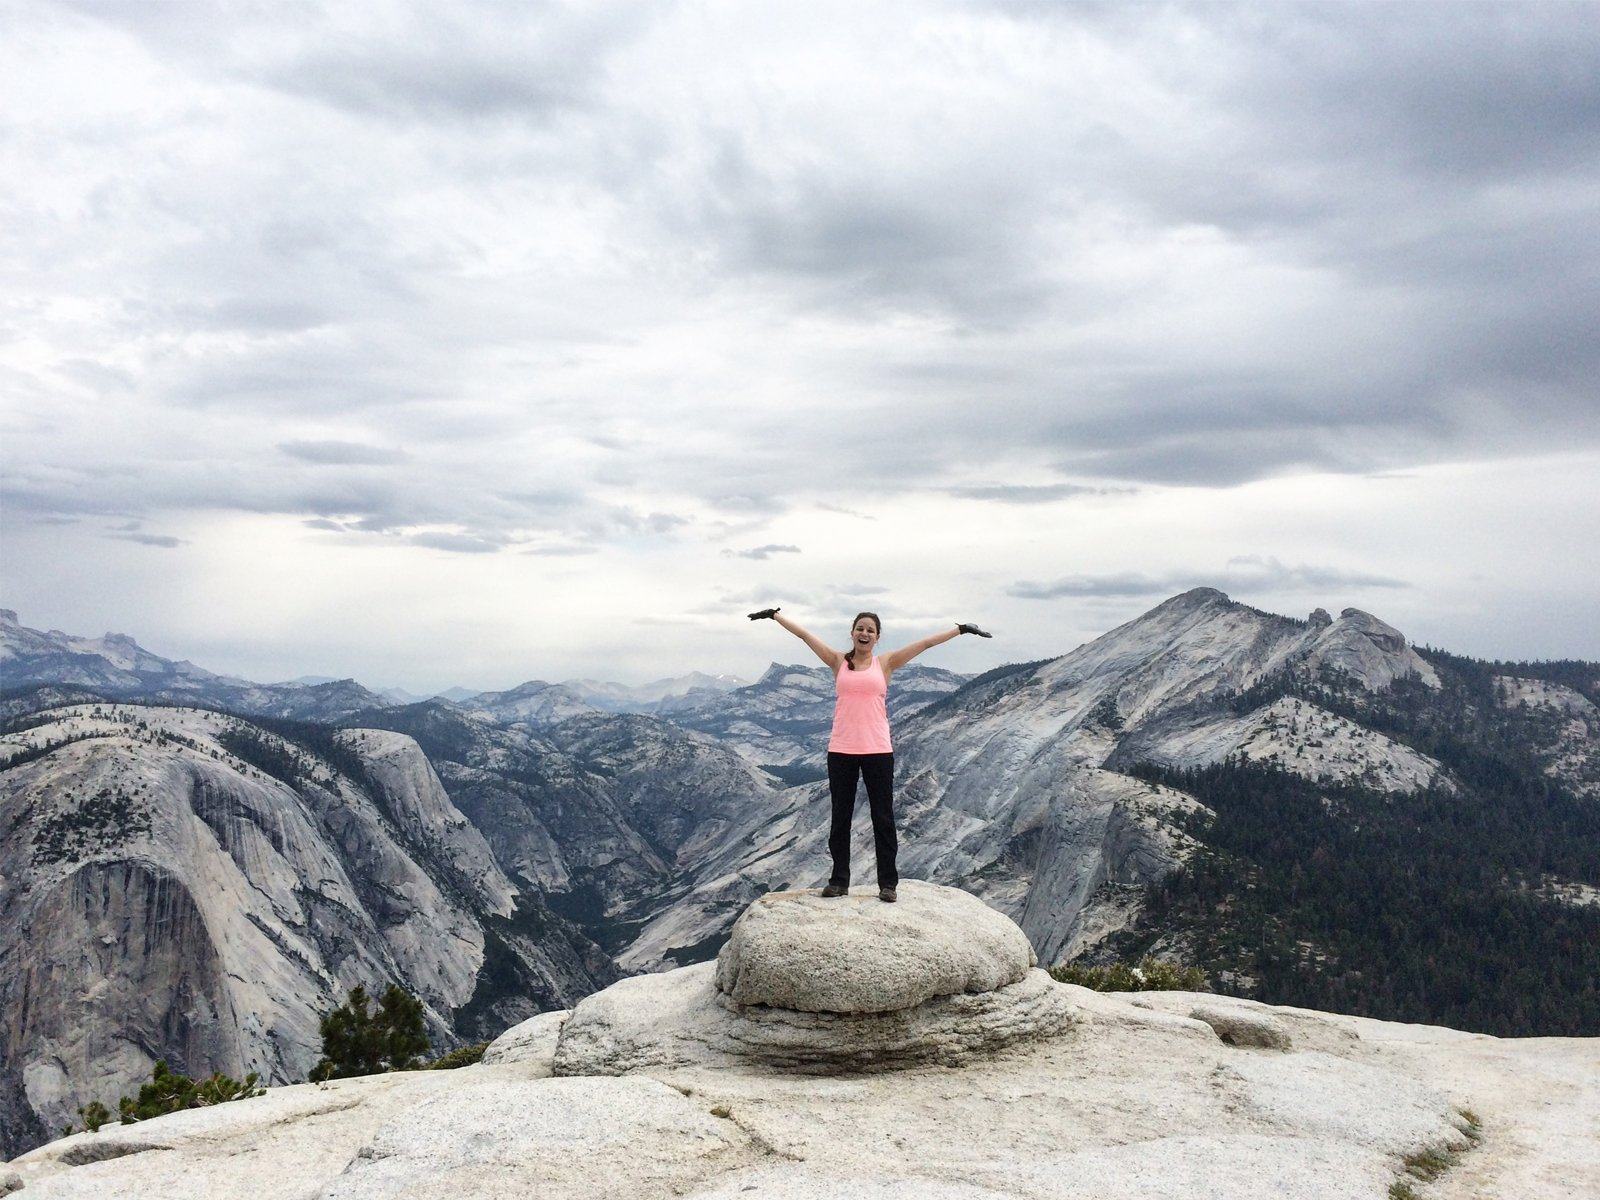 a hiker at the summit of half dome in yosemite national park